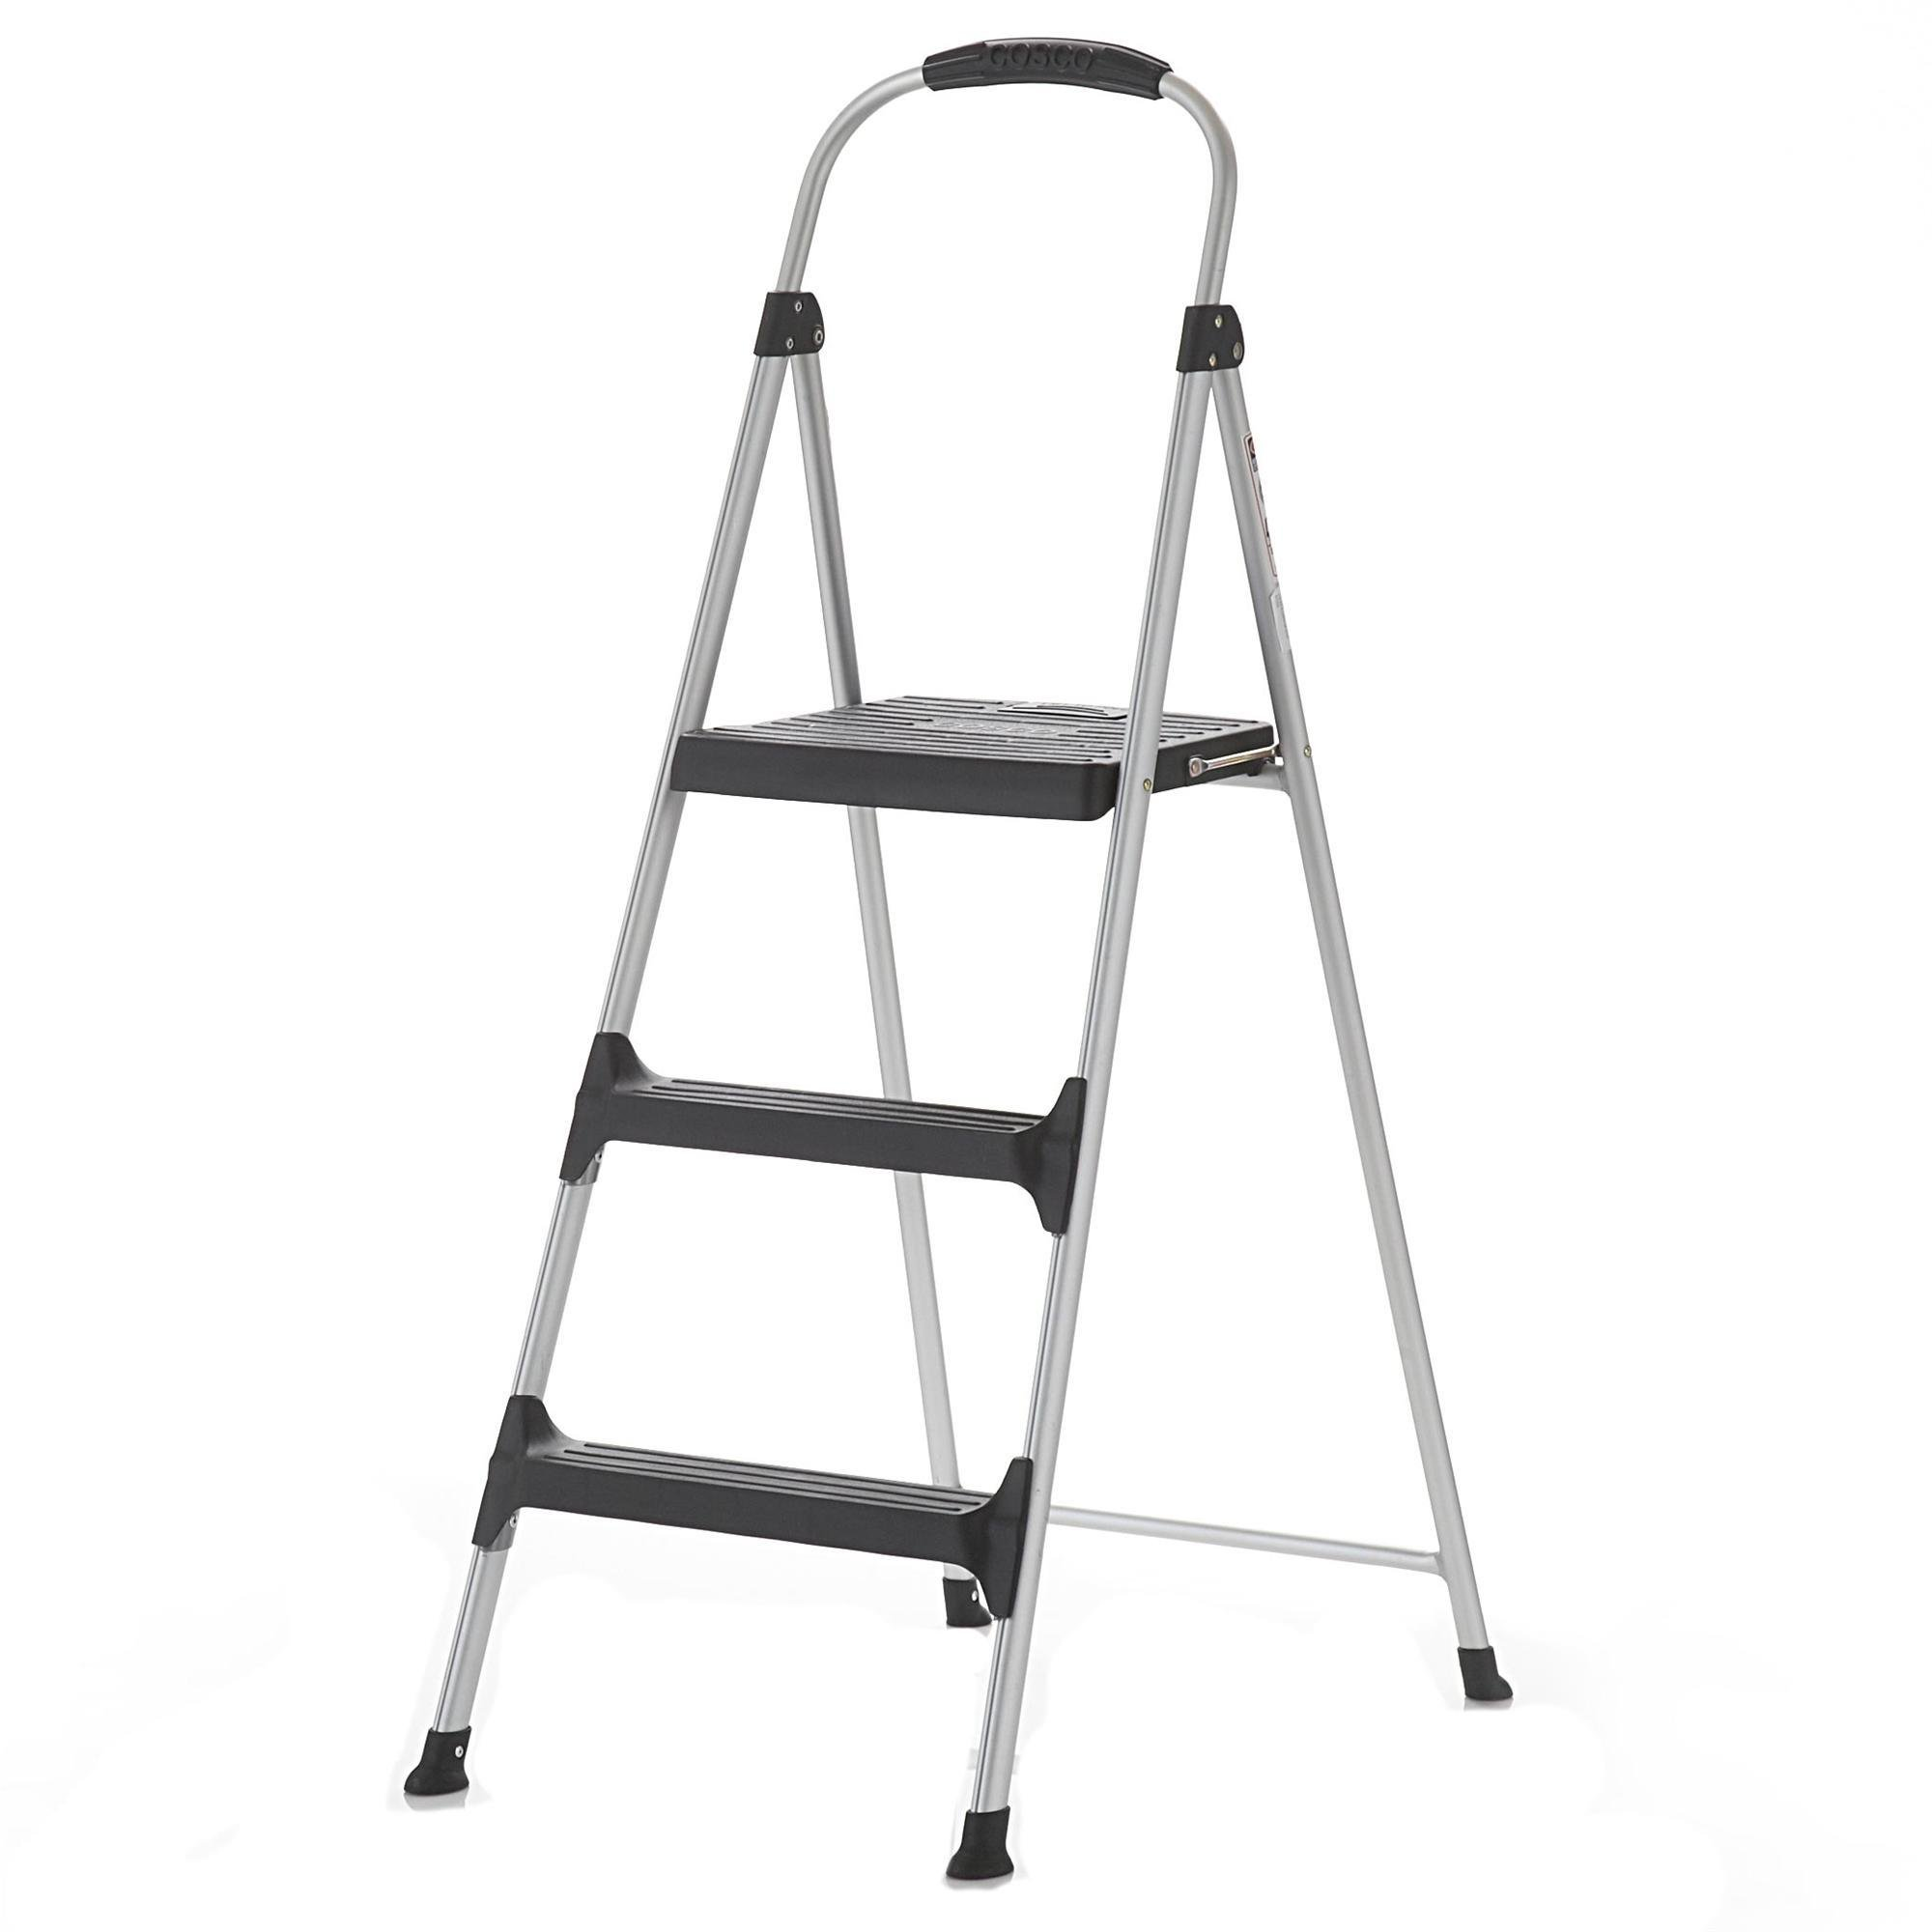 Cosco Signature Step Stool Three-Step Aluminum with Plastic Steps by Cosco (Image #4)